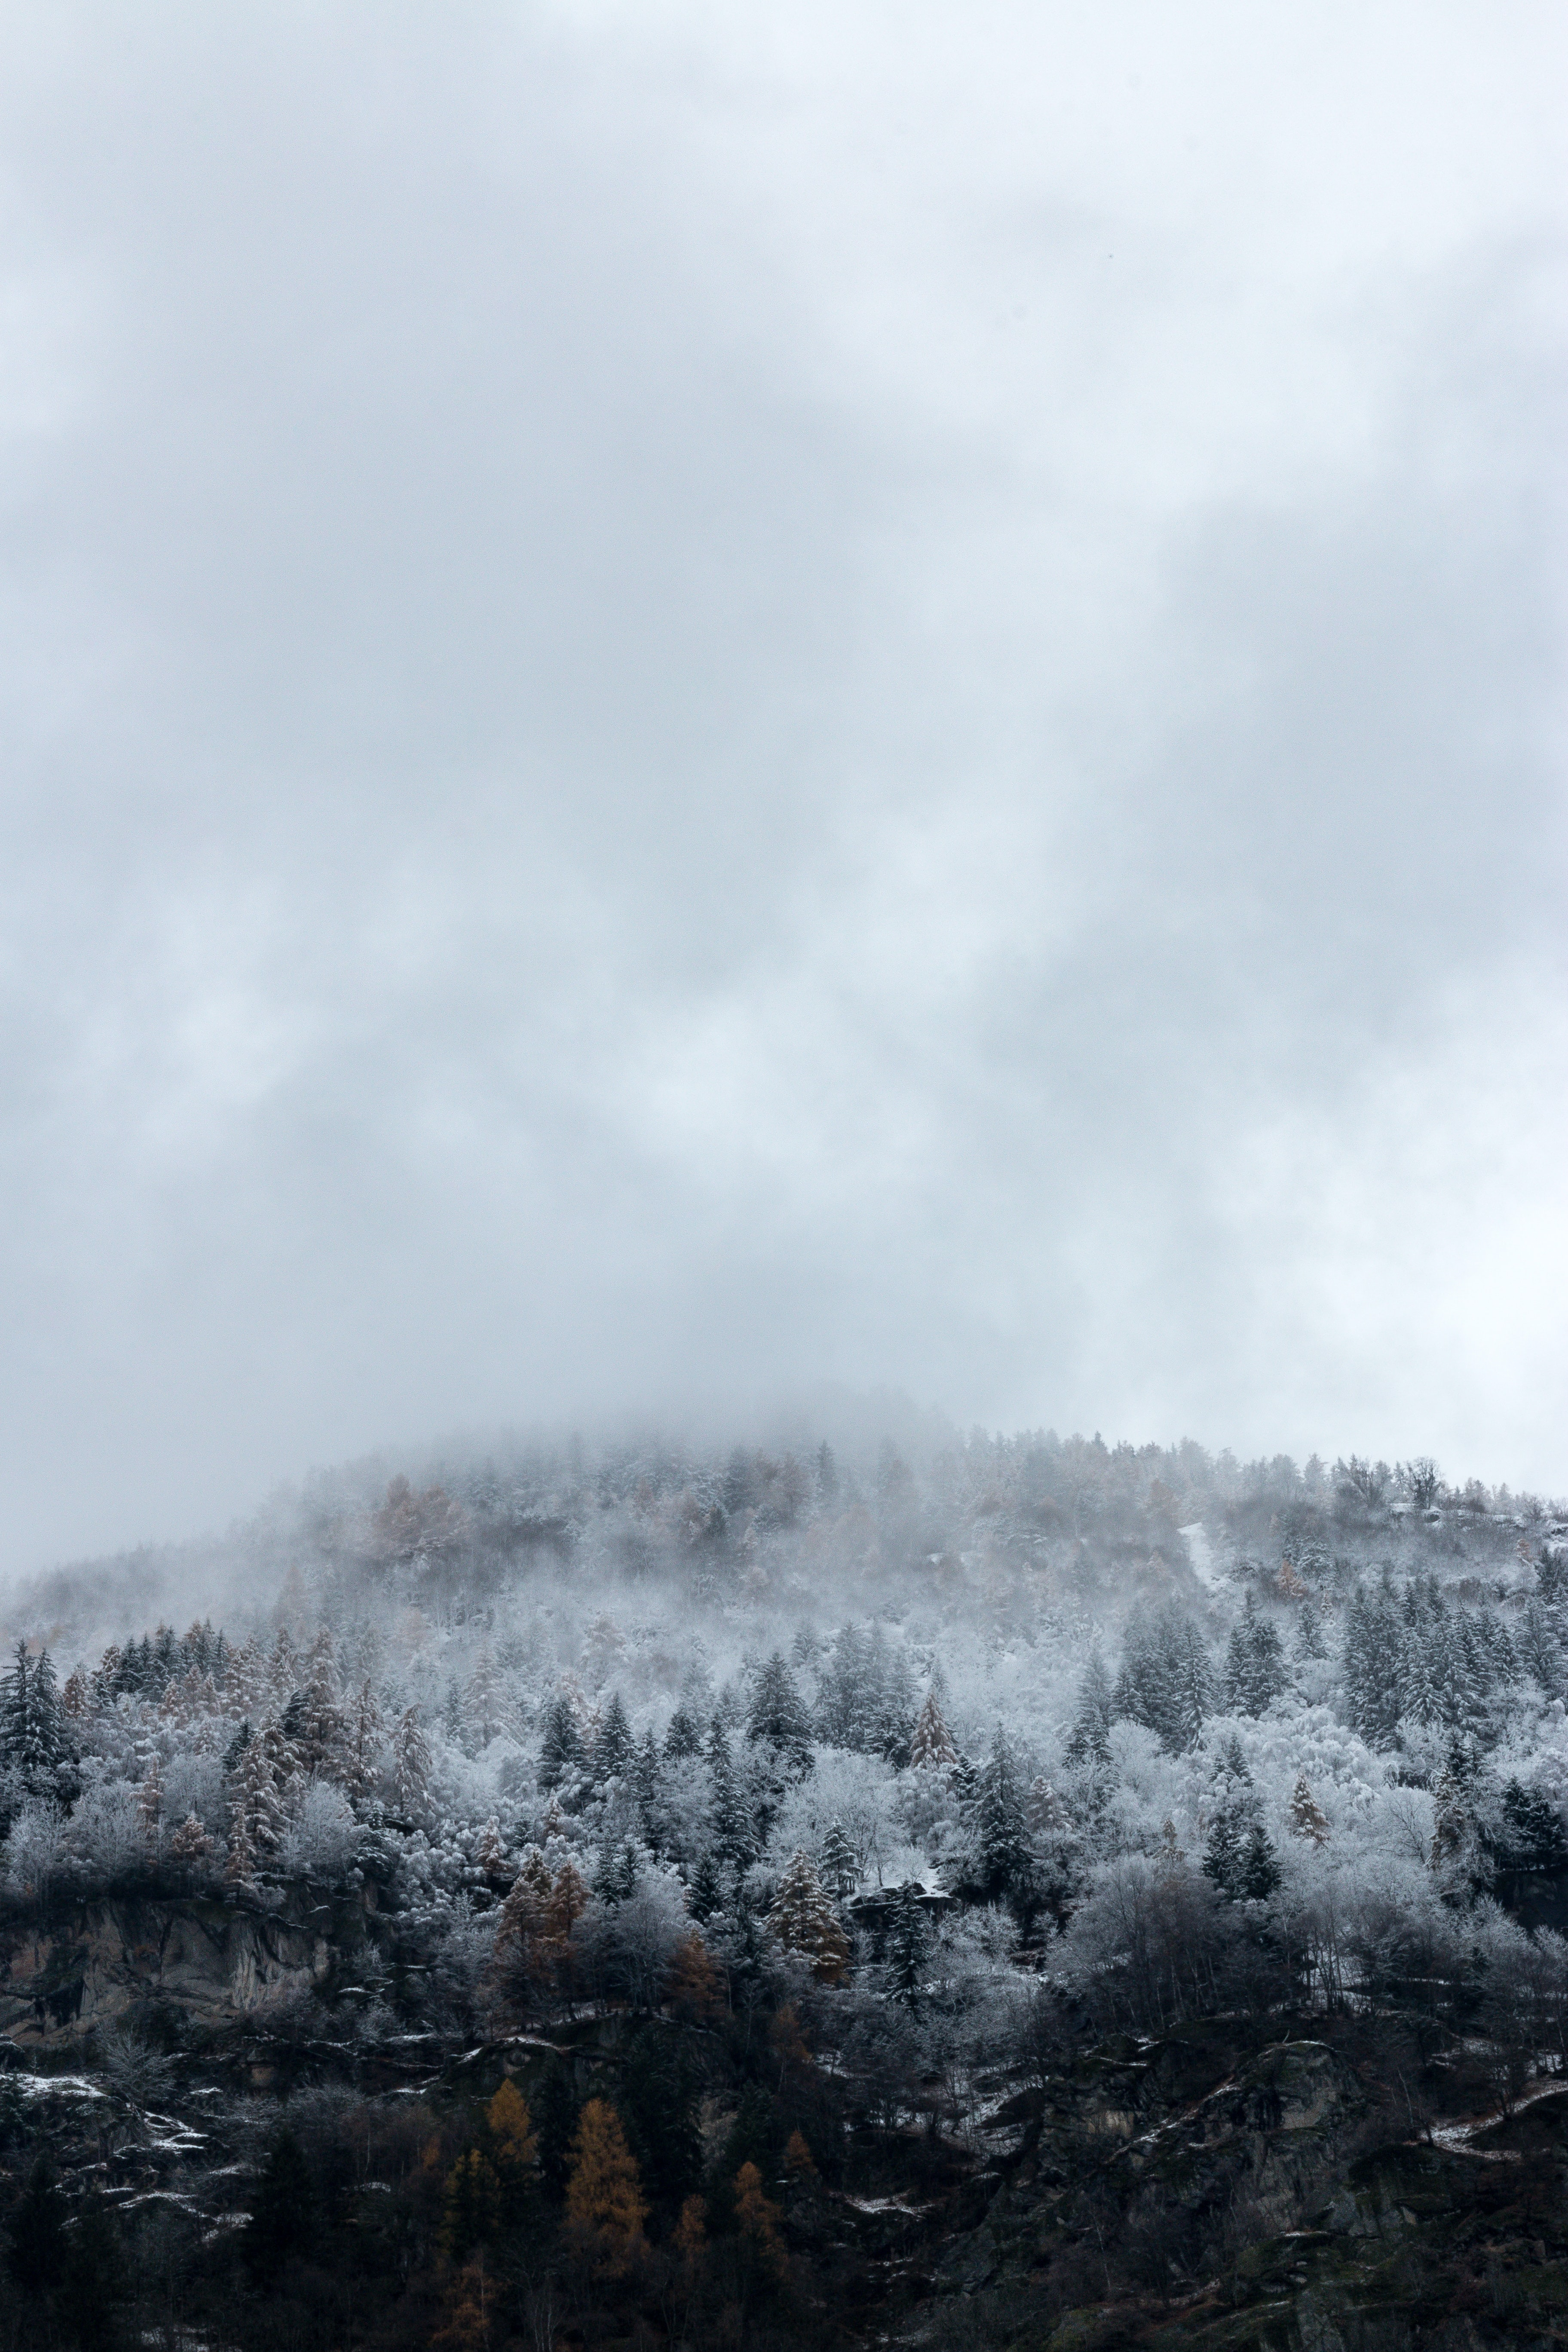 snow-covered forest during cloudy day